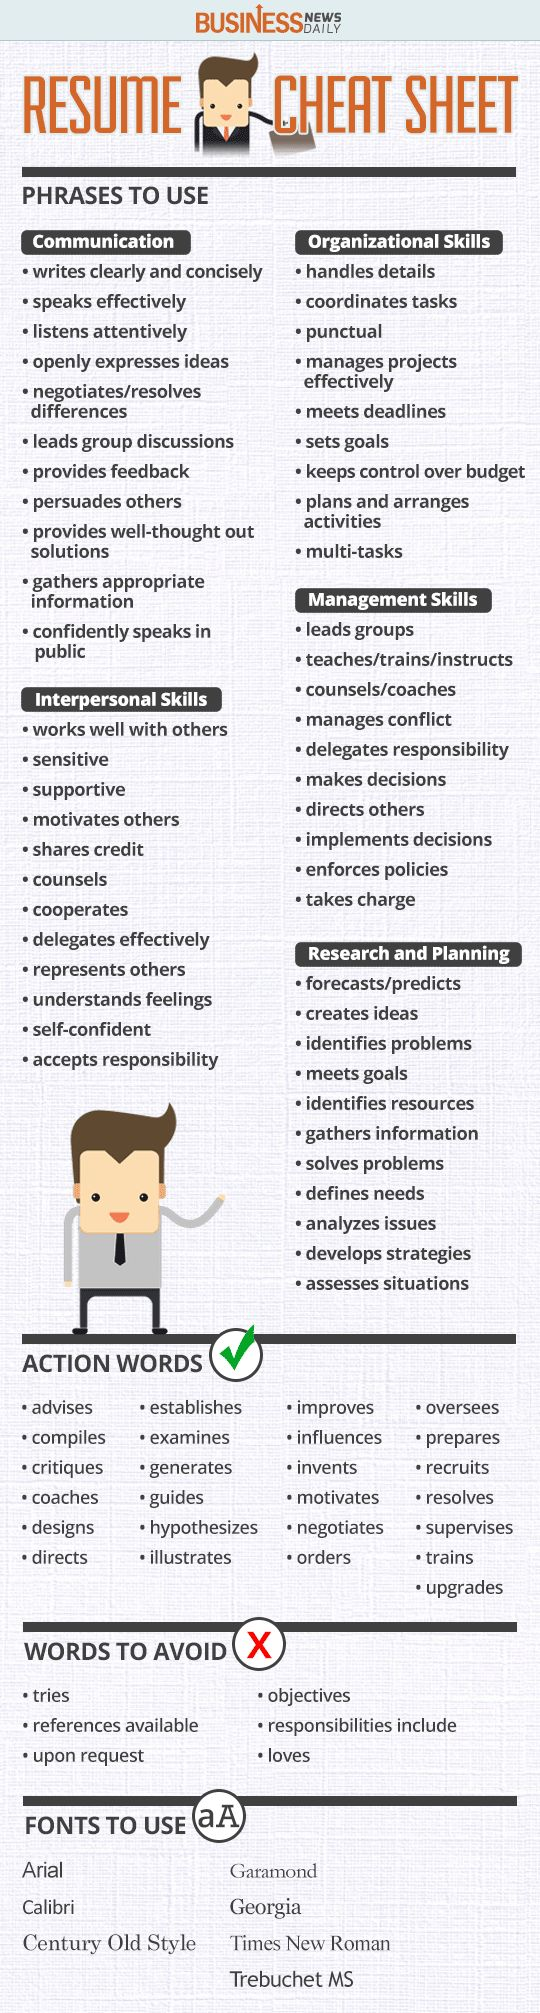 Opposenewapstandardsus  Ravishing  Ideas About Resume On Pinterest  Cv Format Resume Cv And  With Remarkable Resume Cheat Sheet Infographic Andrews Almost Done With A Complete Unit On Employment Which With Comely Science Resumes Also Completely Free Resume Templates In Addition Project Manager Resume Template And Simple Resume Outline As Well As Sample Resume Reference Page Additionally Wardrobe Stylist Resume From Pinterestcom With Opposenewapstandardsus  Remarkable  Ideas About Resume On Pinterest  Cv Format Resume Cv And  With Comely Resume Cheat Sheet Infographic Andrews Almost Done With A Complete Unit On Employment Which And Ravishing Science Resumes Also Completely Free Resume Templates In Addition Project Manager Resume Template From Pinterestcom